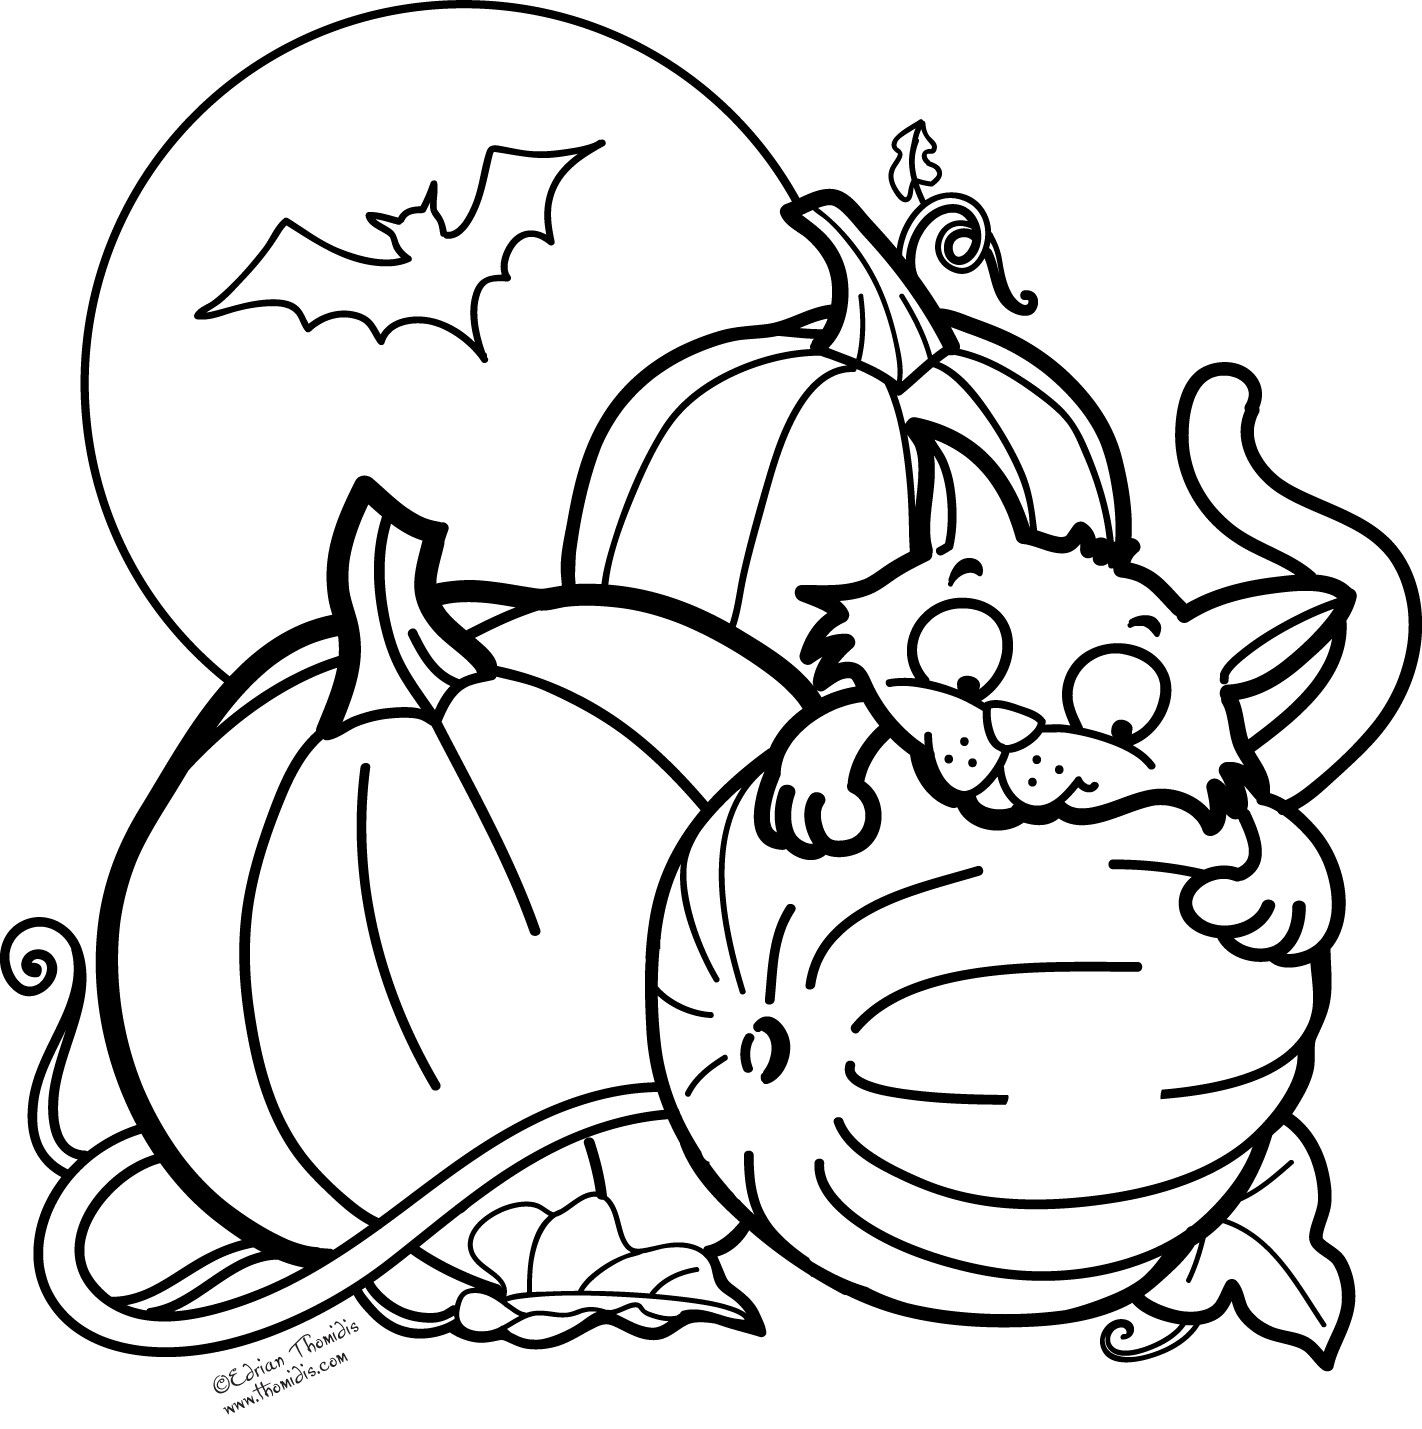 Halloween coloring pages google search halloween for Fall coloring pages for toddlers